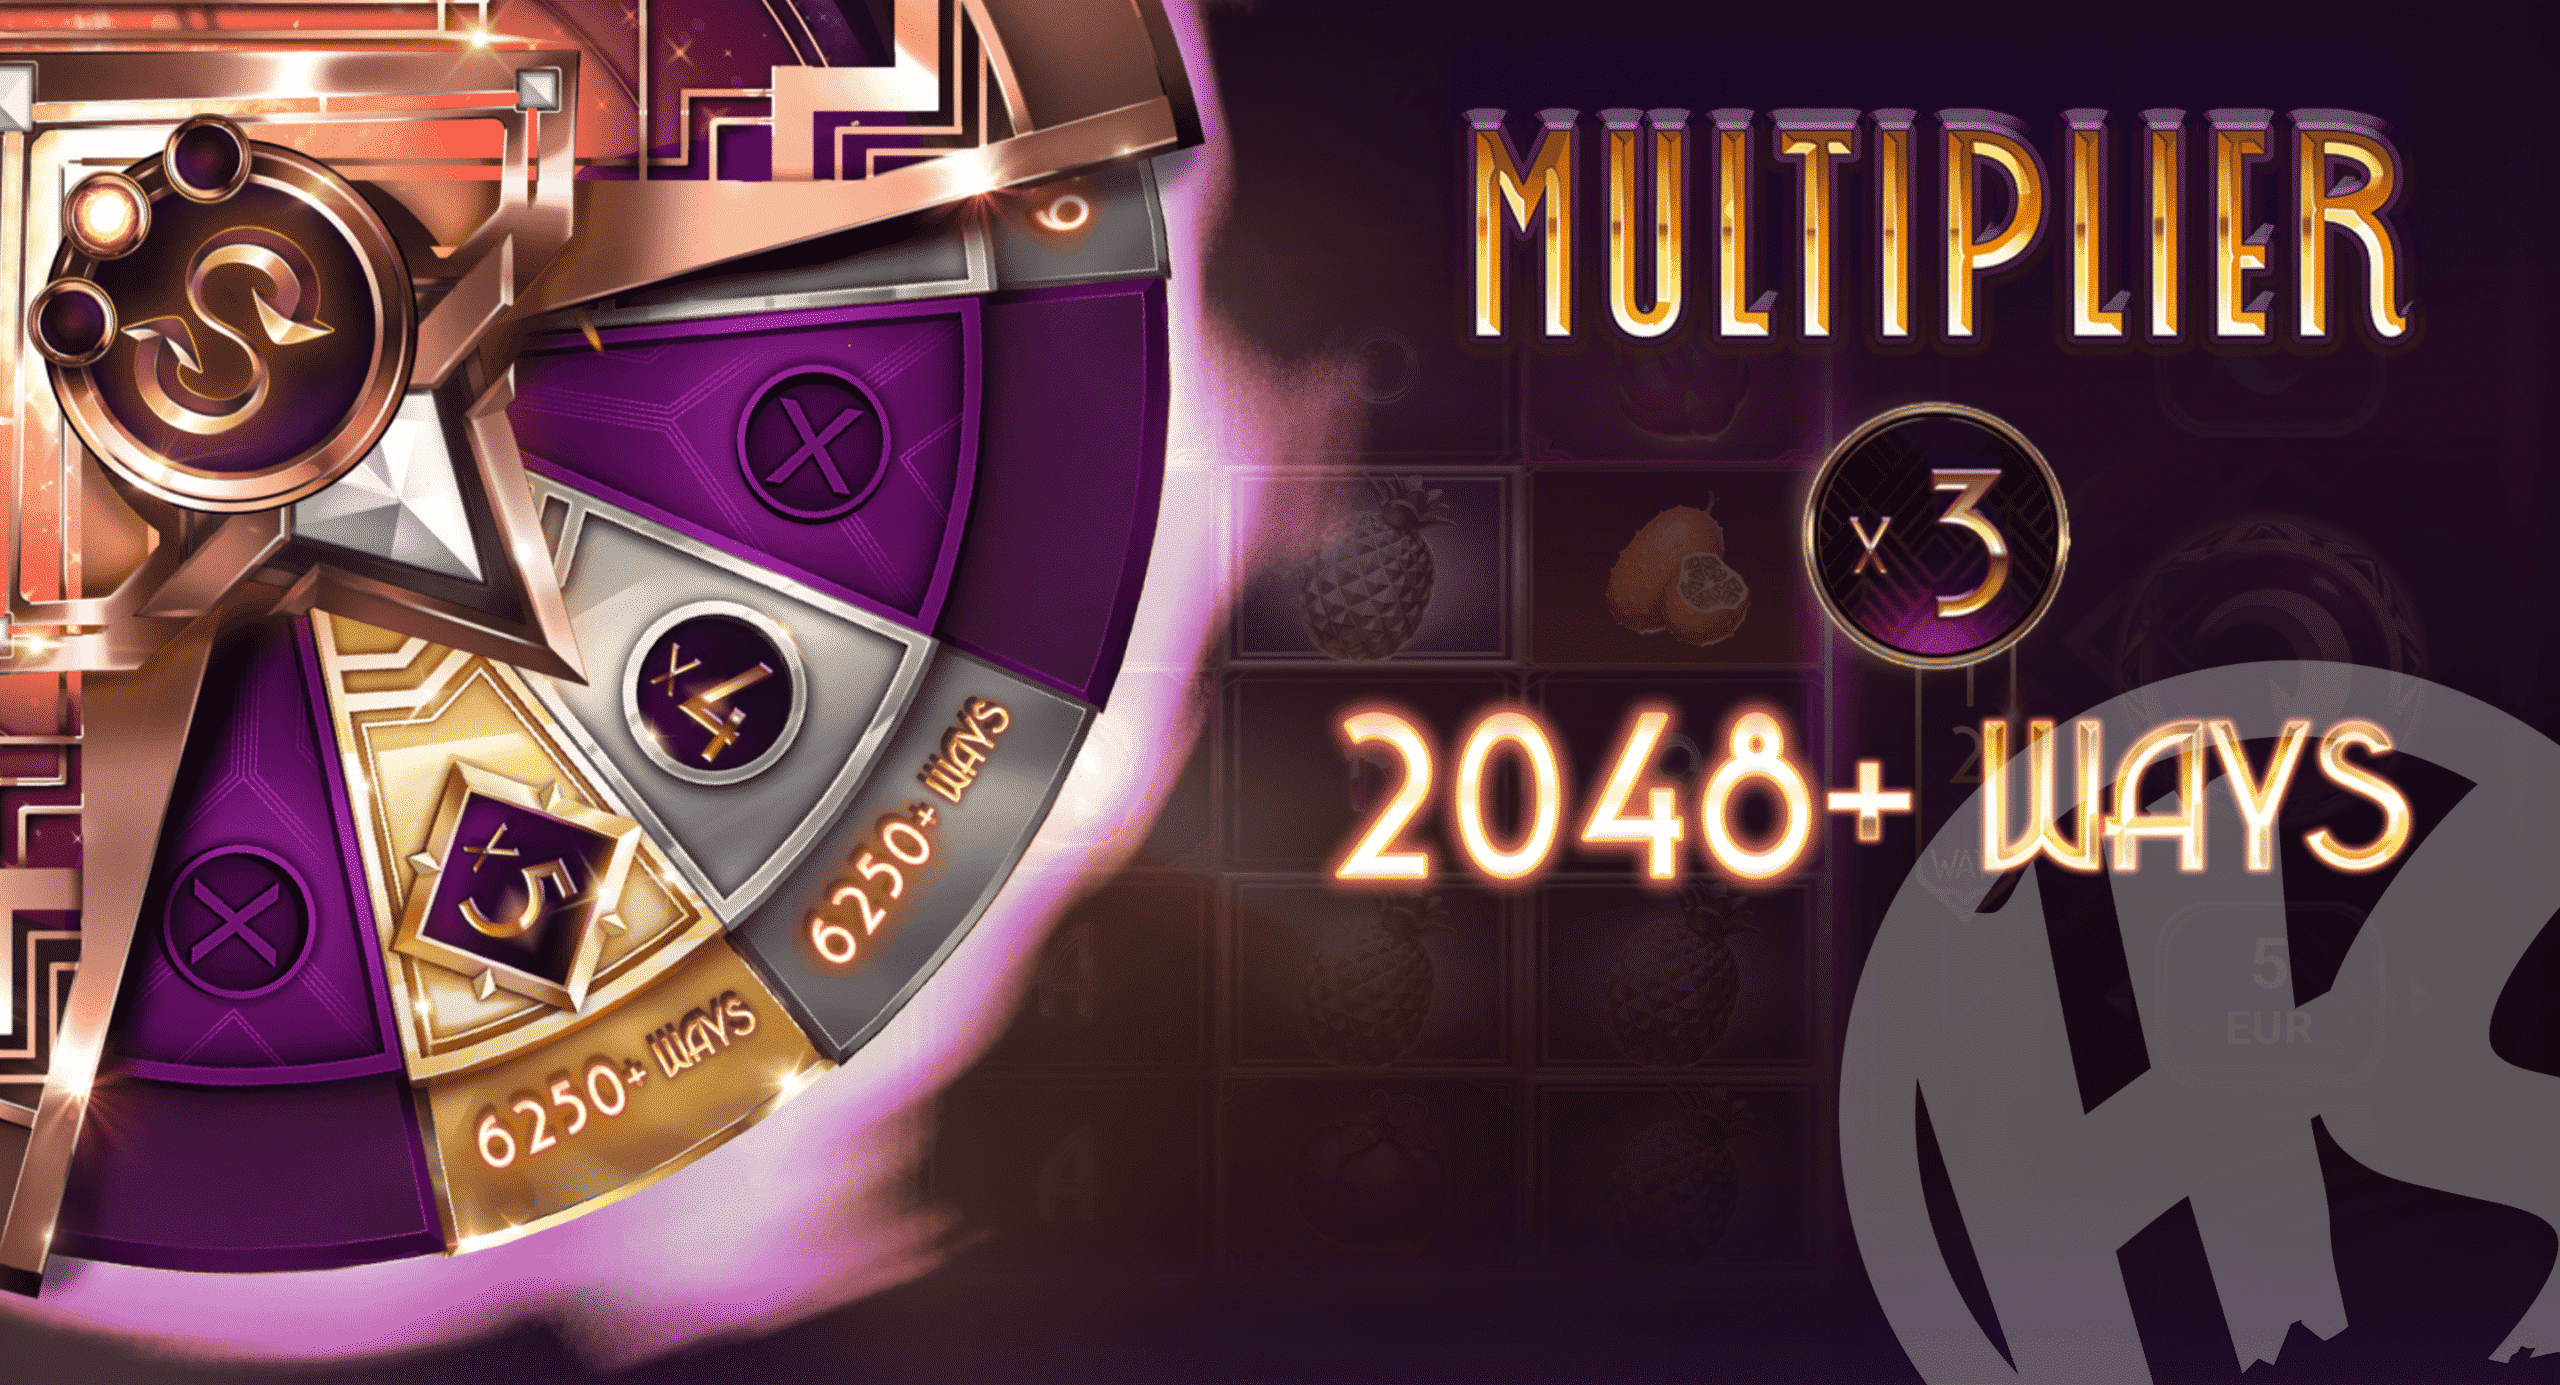 Players Can Gamble Up To 6,250 Ways & x5 Multiplier